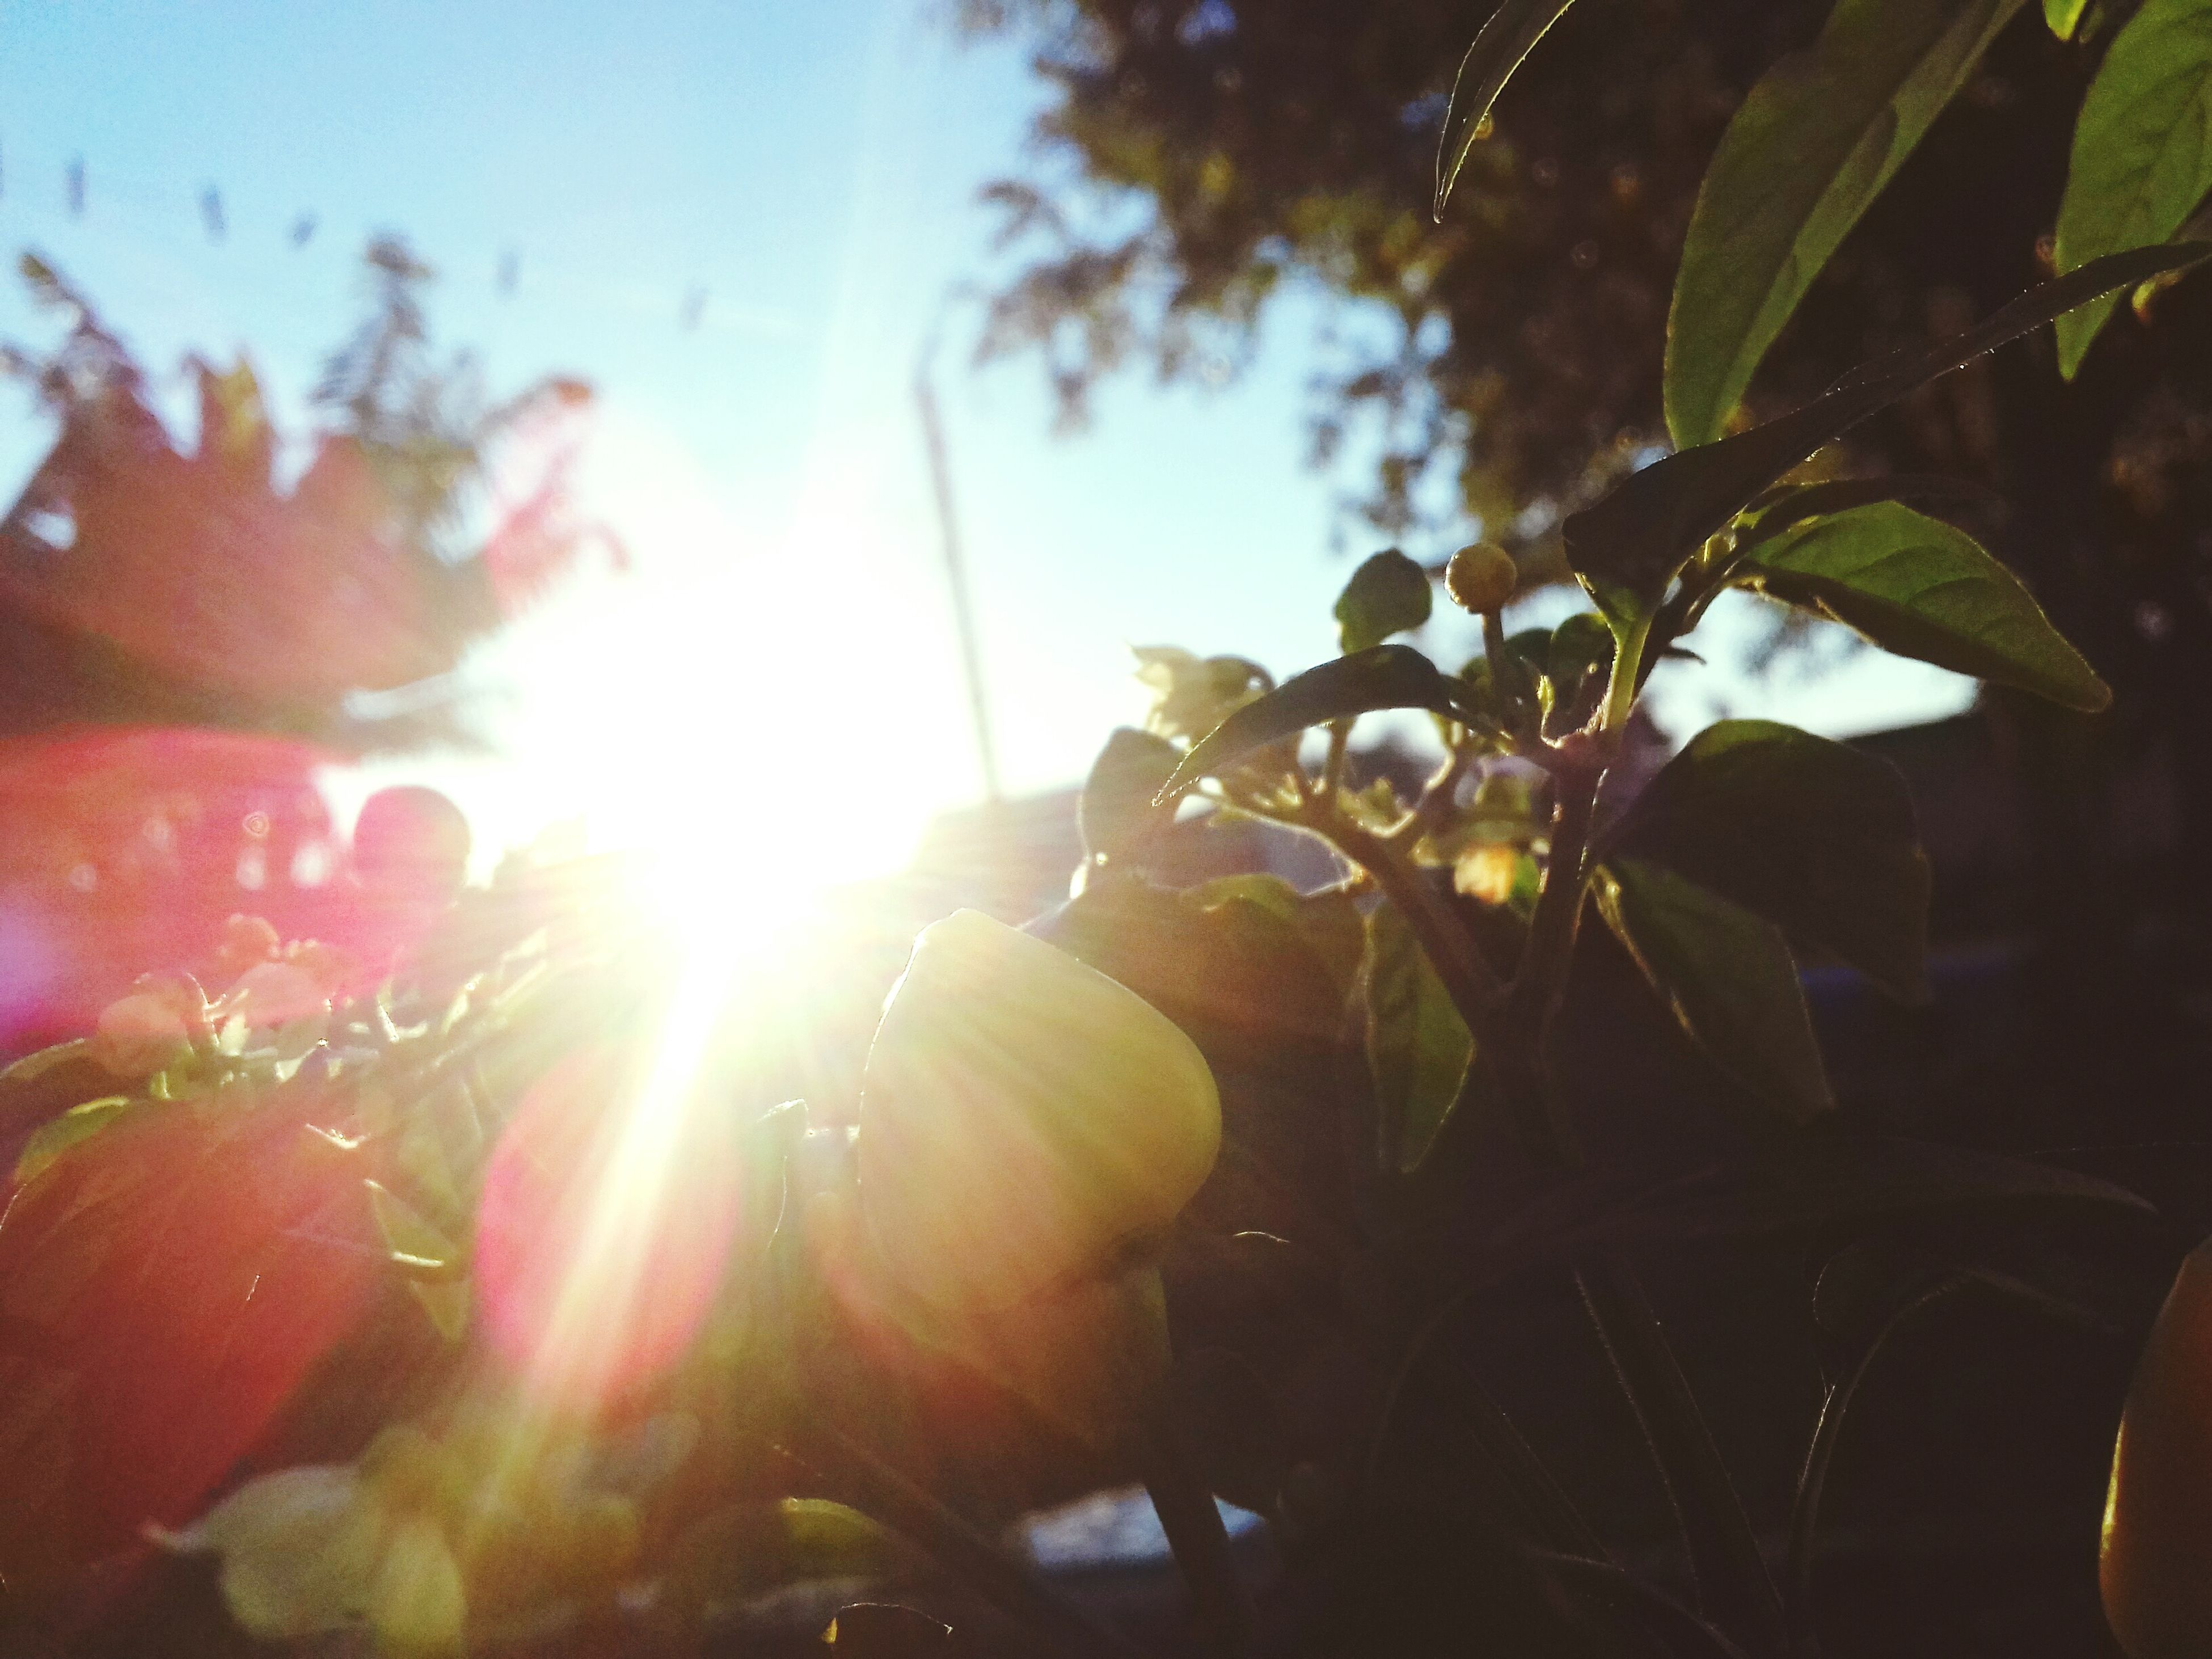 leaf, plant, sunlight, growth, sun, nature, close-up, no people, outdoors, day, tree, beauty in nature, freshness, sky